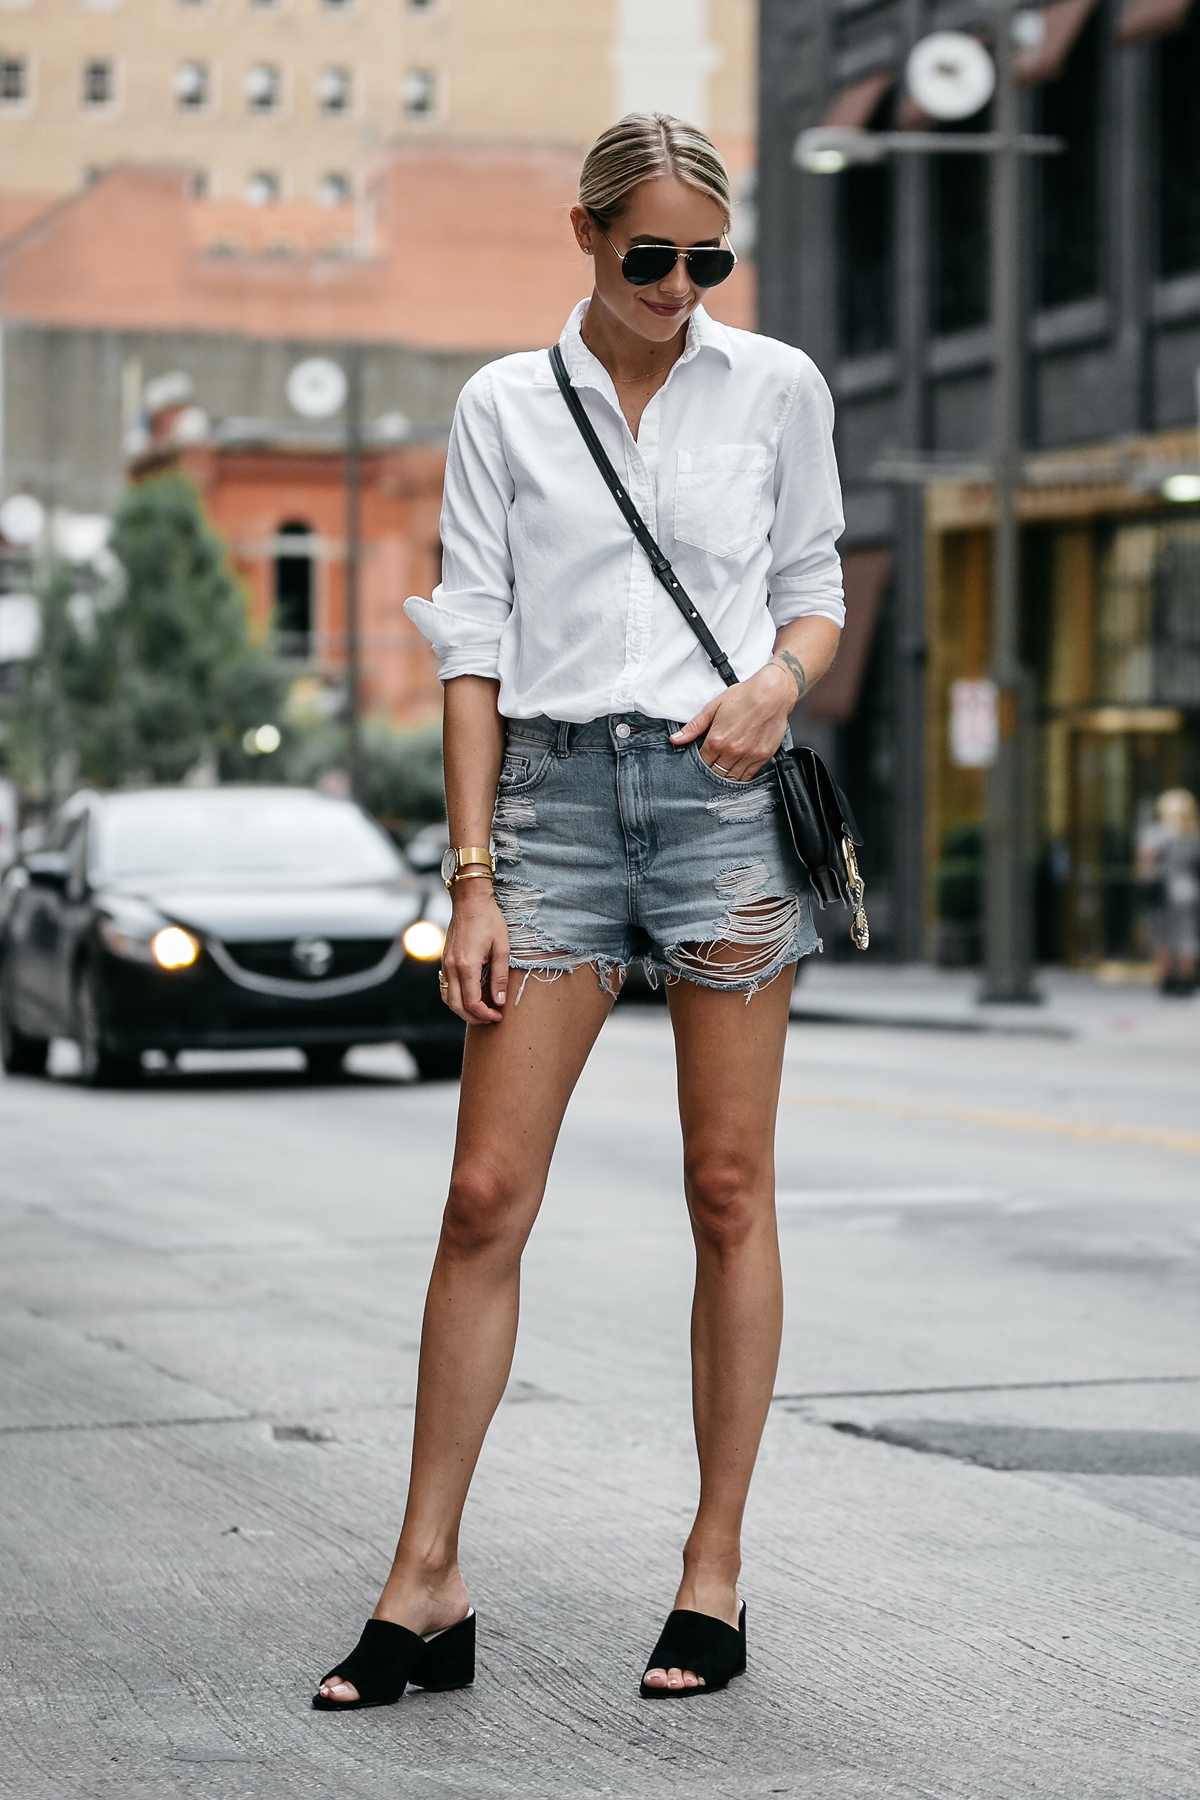 Blonde Woman Wearing Banana Republic White Button Down Shirt Topshop Ripped Denim Cutoff Shorts Outfit Steve Madden Black Mules Chloe Faye Handbag Street Style Dallas Blogger Fashion Blogger Fashion Jackson